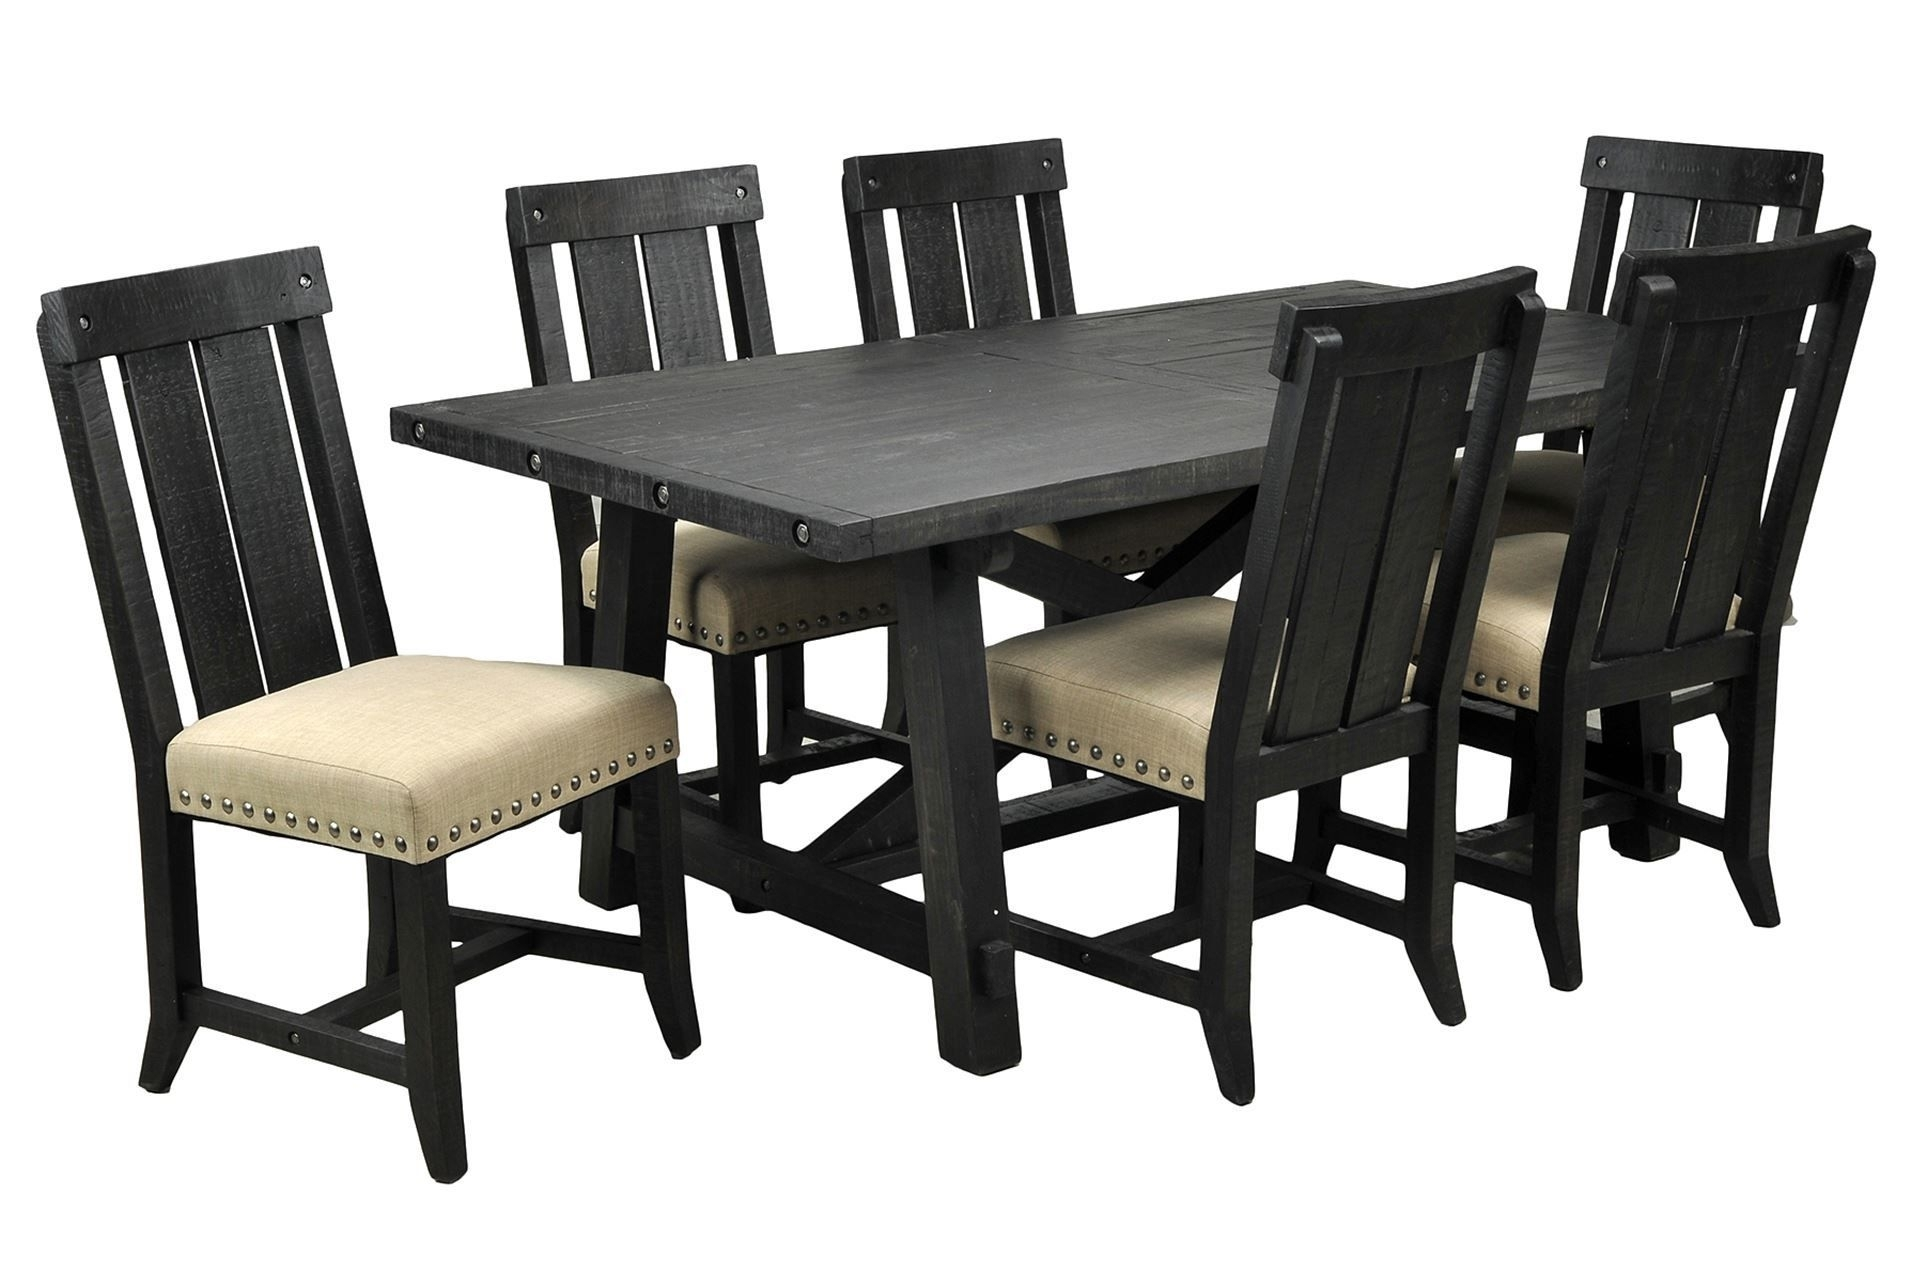 Jaxon 7 Piece Rectangle Dining Set W/wood Chairs | For The House I For Recent Jaxon Grey 5 Piece Extension Counter Sets With Wood Stools (Image 12 of 20)